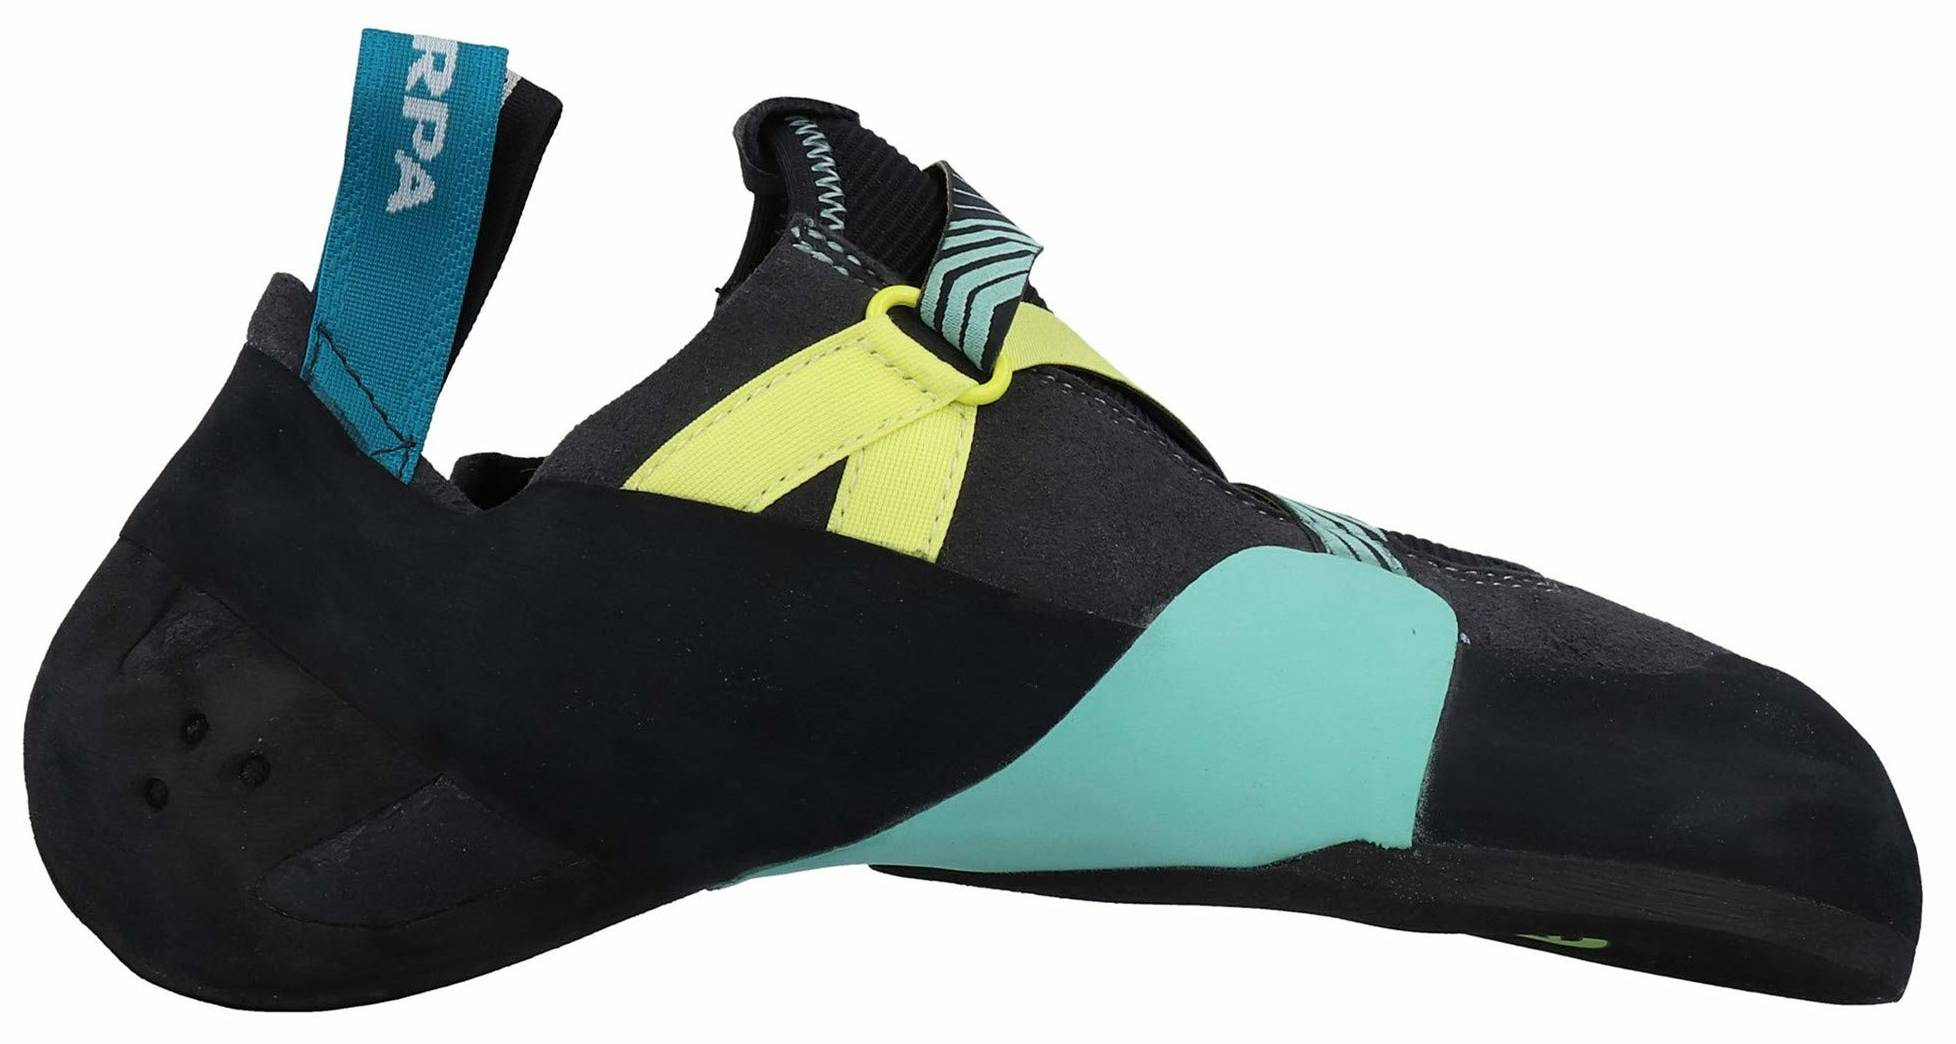 Save 53% on Climbing Shoes (168 Models